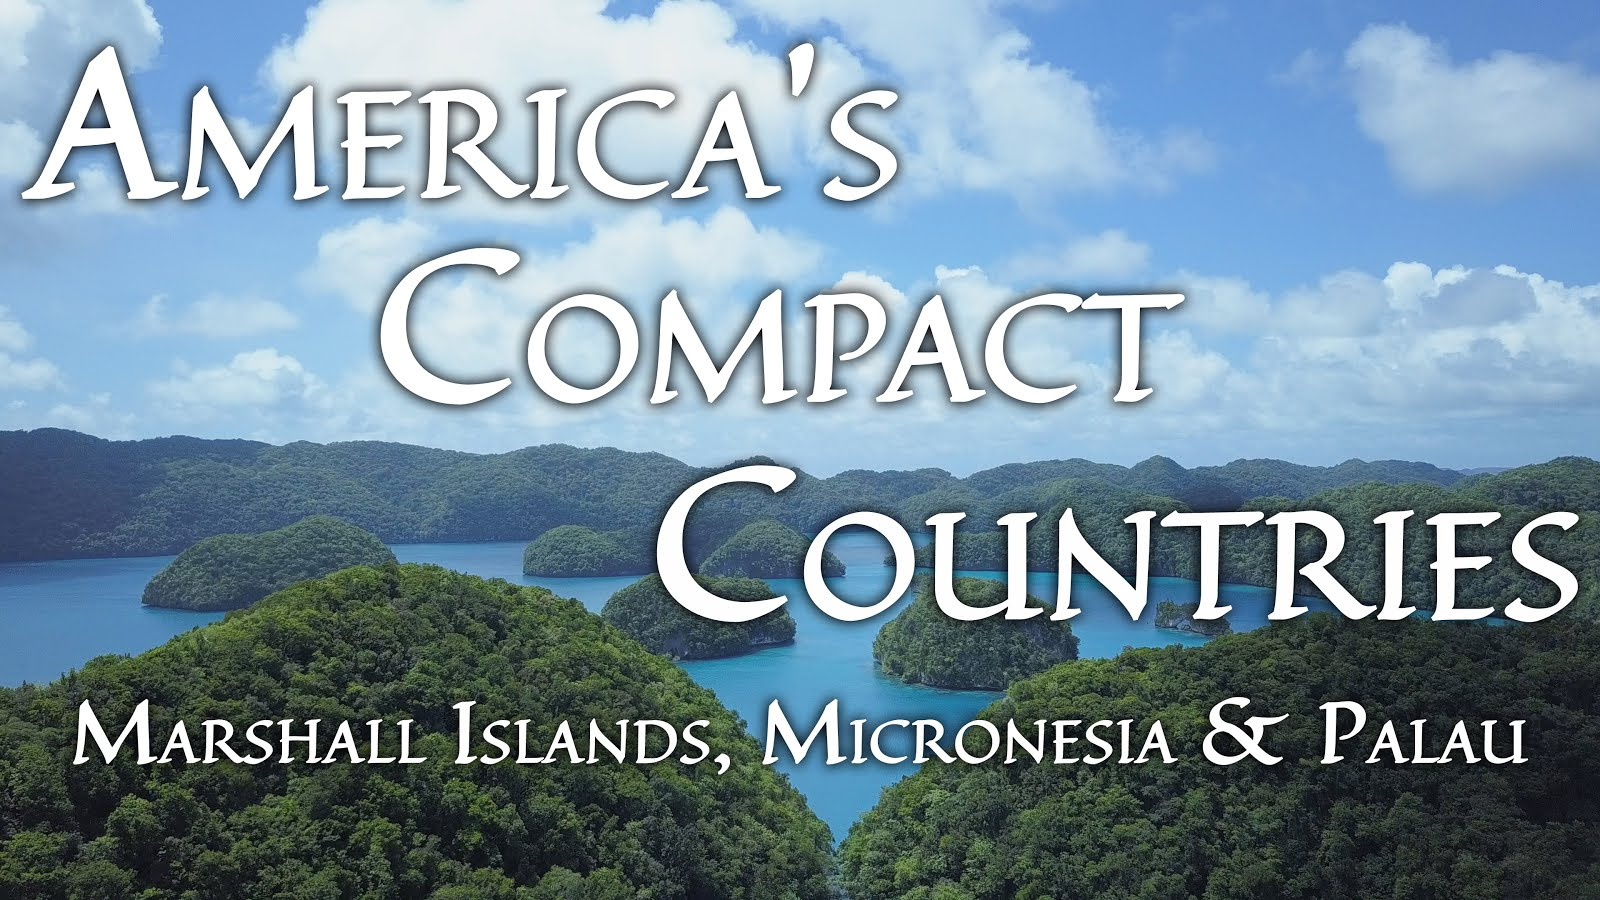 America's Compact Countries (60 min in 4 parts)